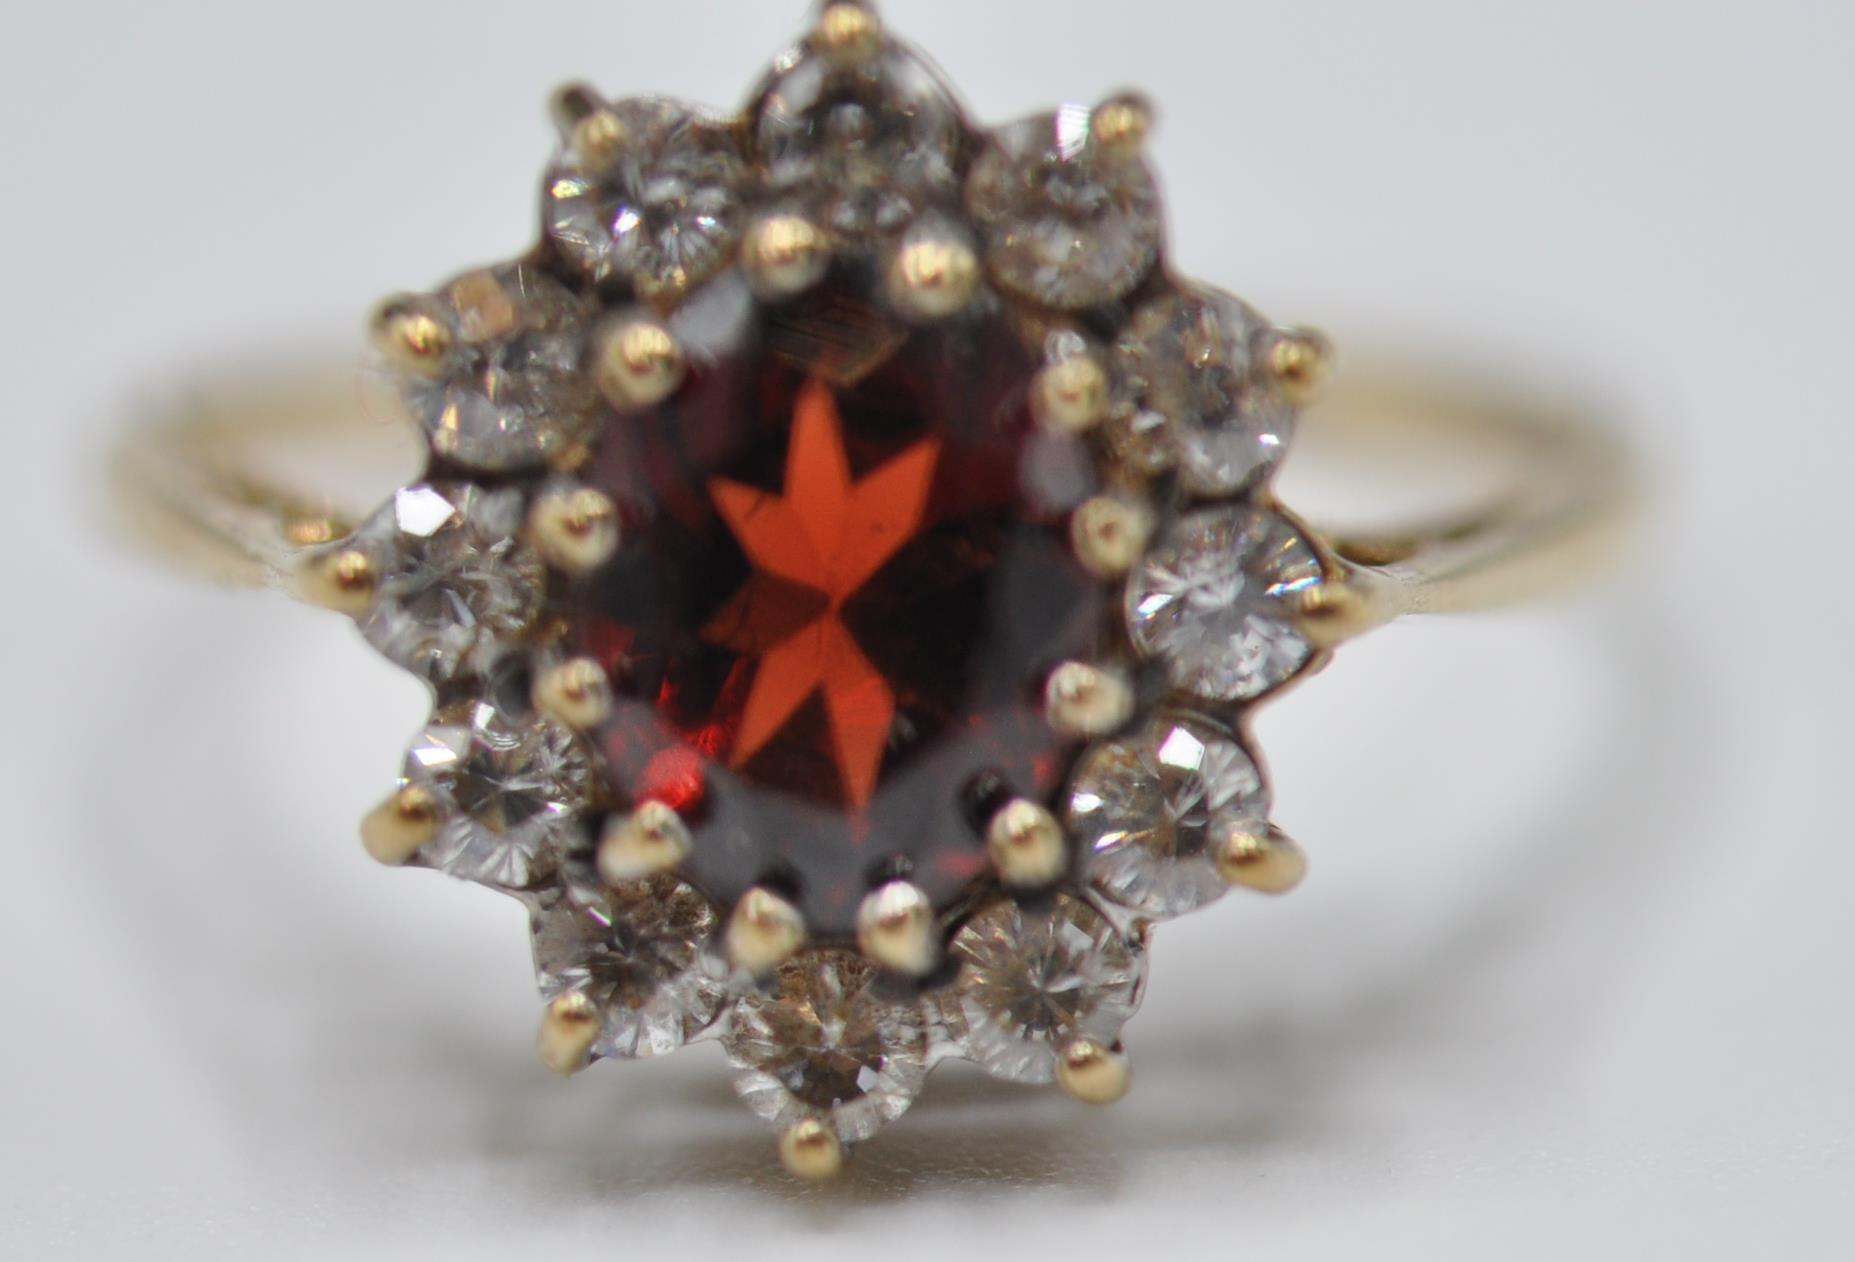 9CT GOLD RED AND WHITE STONE CLUSTER RING - Image 3 of 9